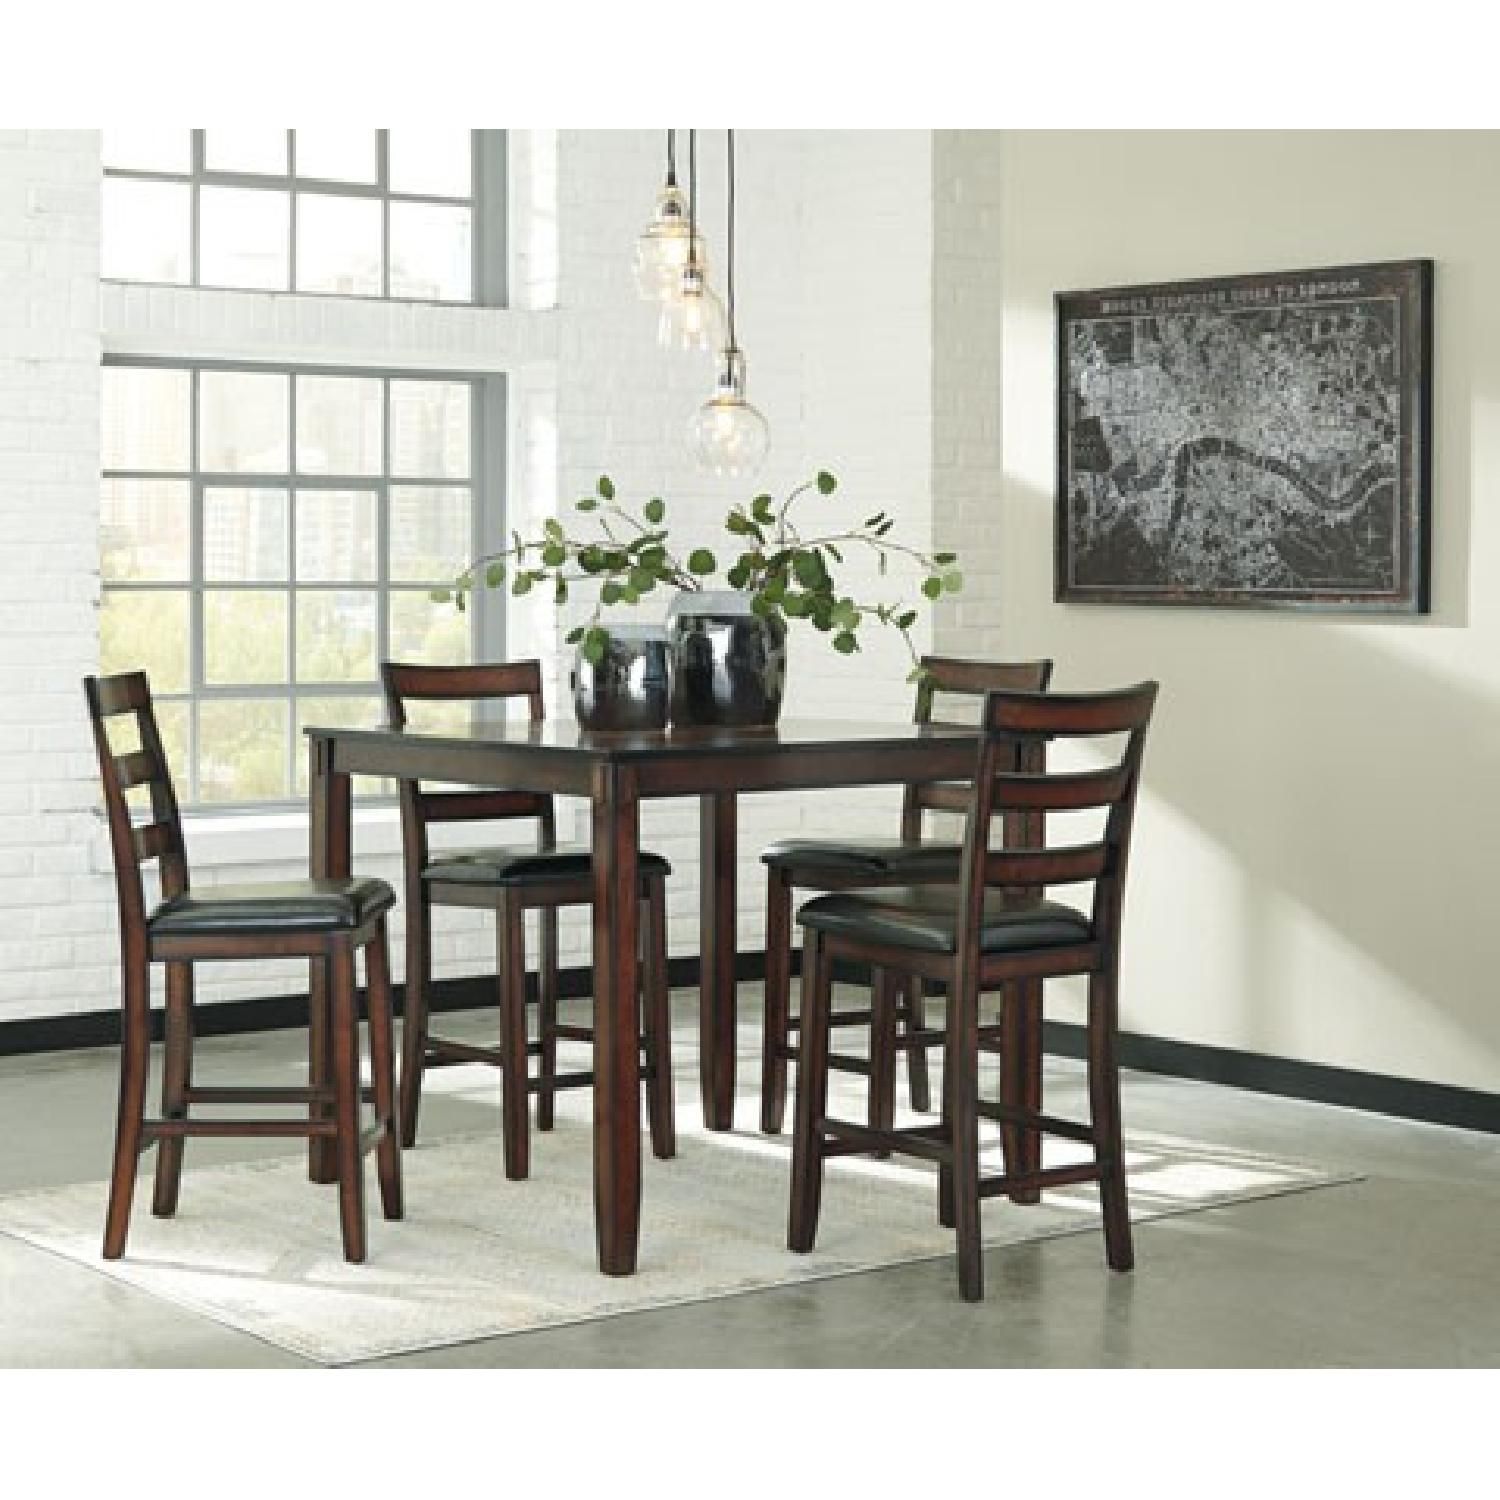 Ashley's Coviar Counter Height 5 Piece Dining Set - image-1